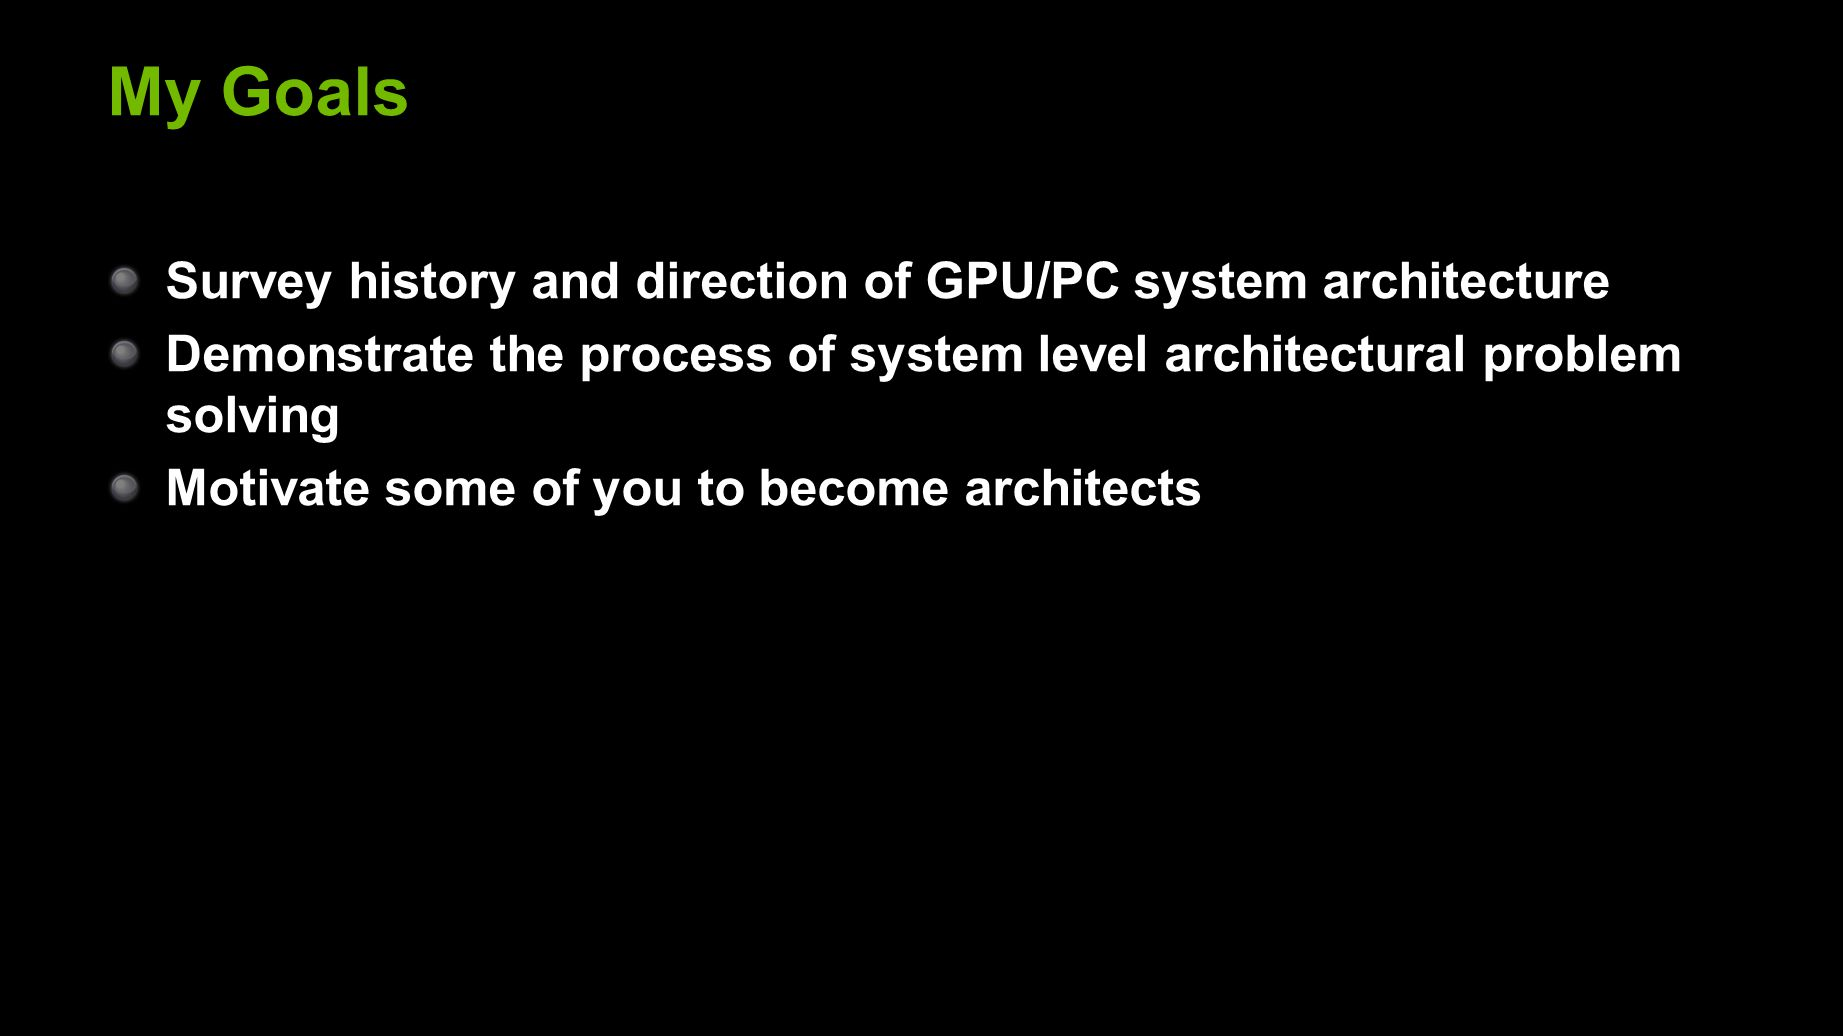 My Goals Survey history and direction of GPU/PC system architecture Demonstrate the process of system level architectural problem solving Motivate some of you to become architects